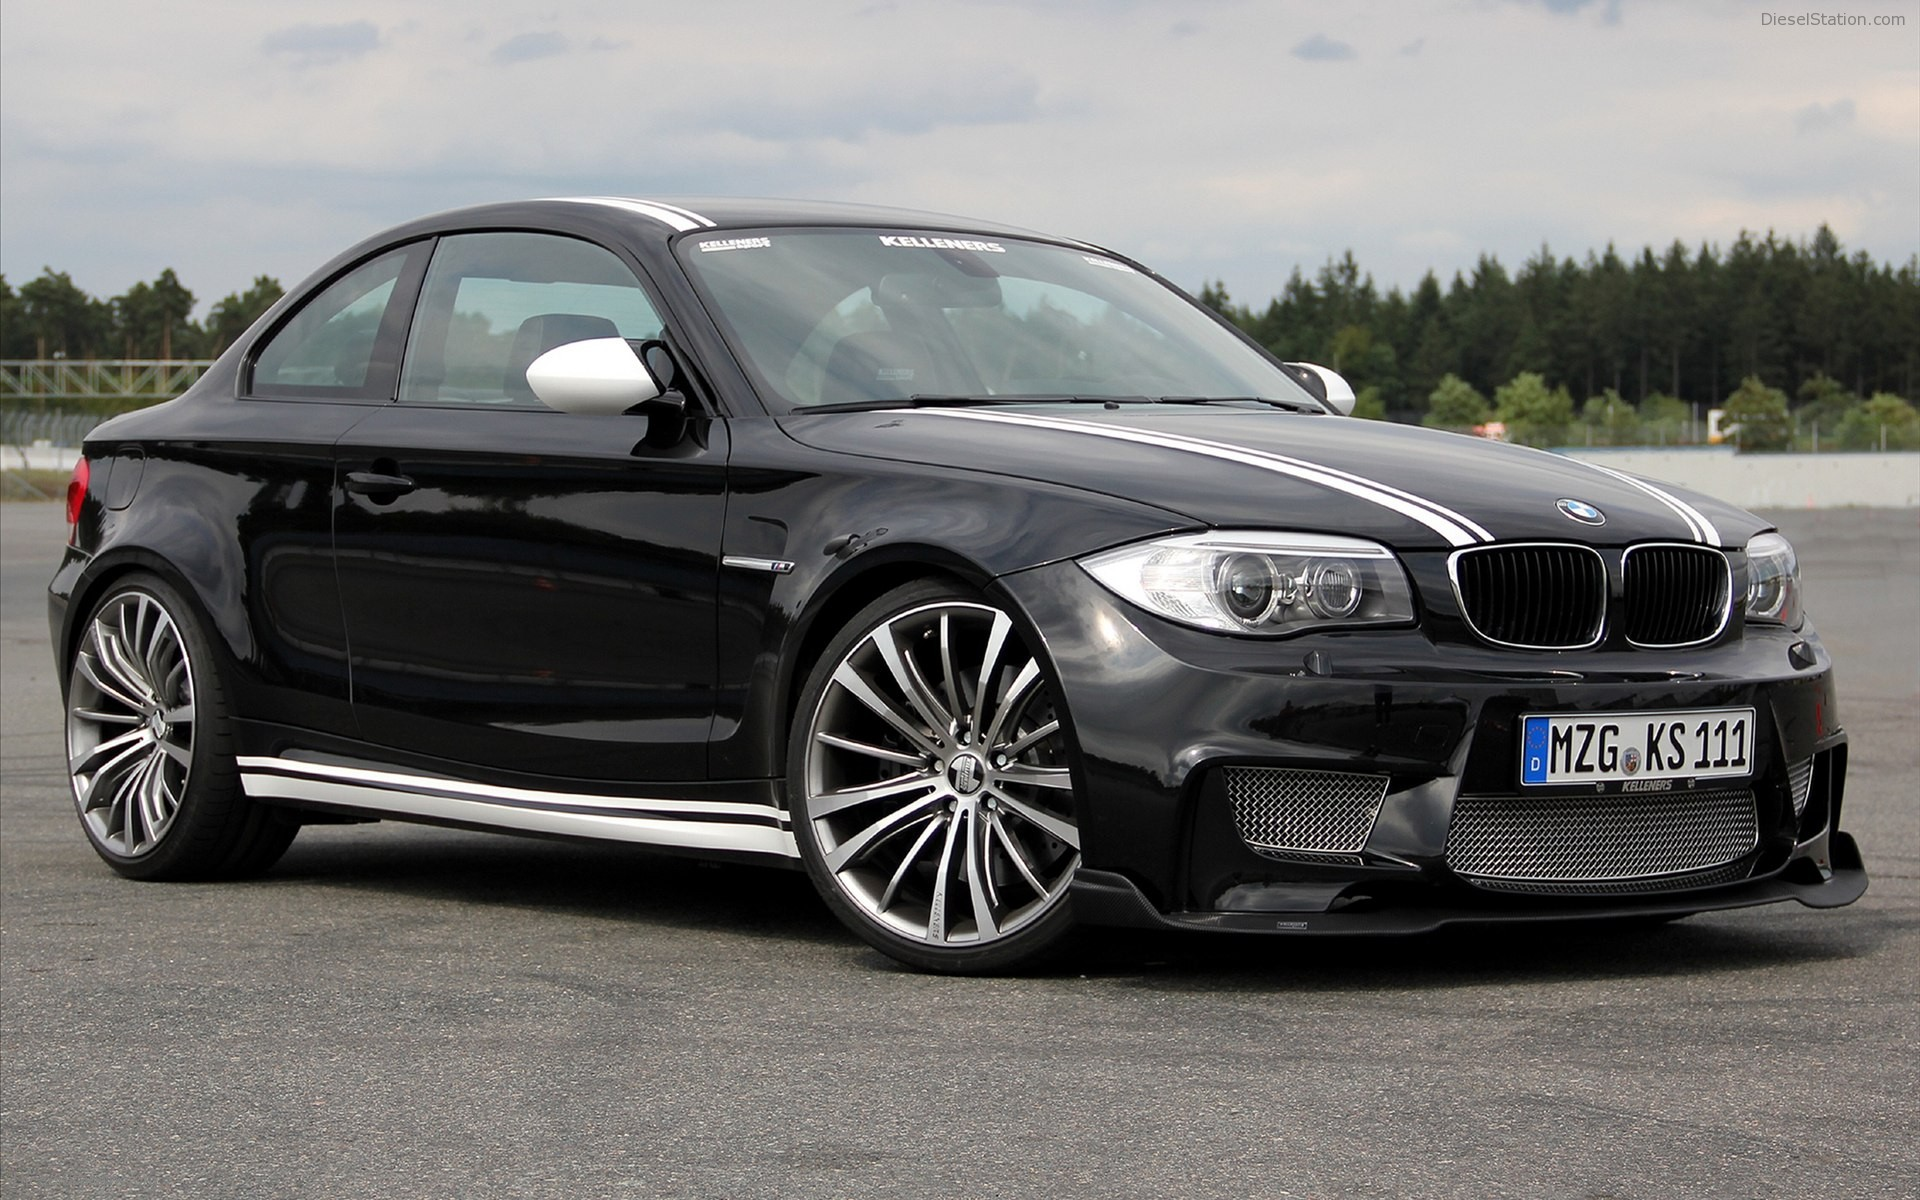 2011 BMW 1 Series M Coupe photo - 2